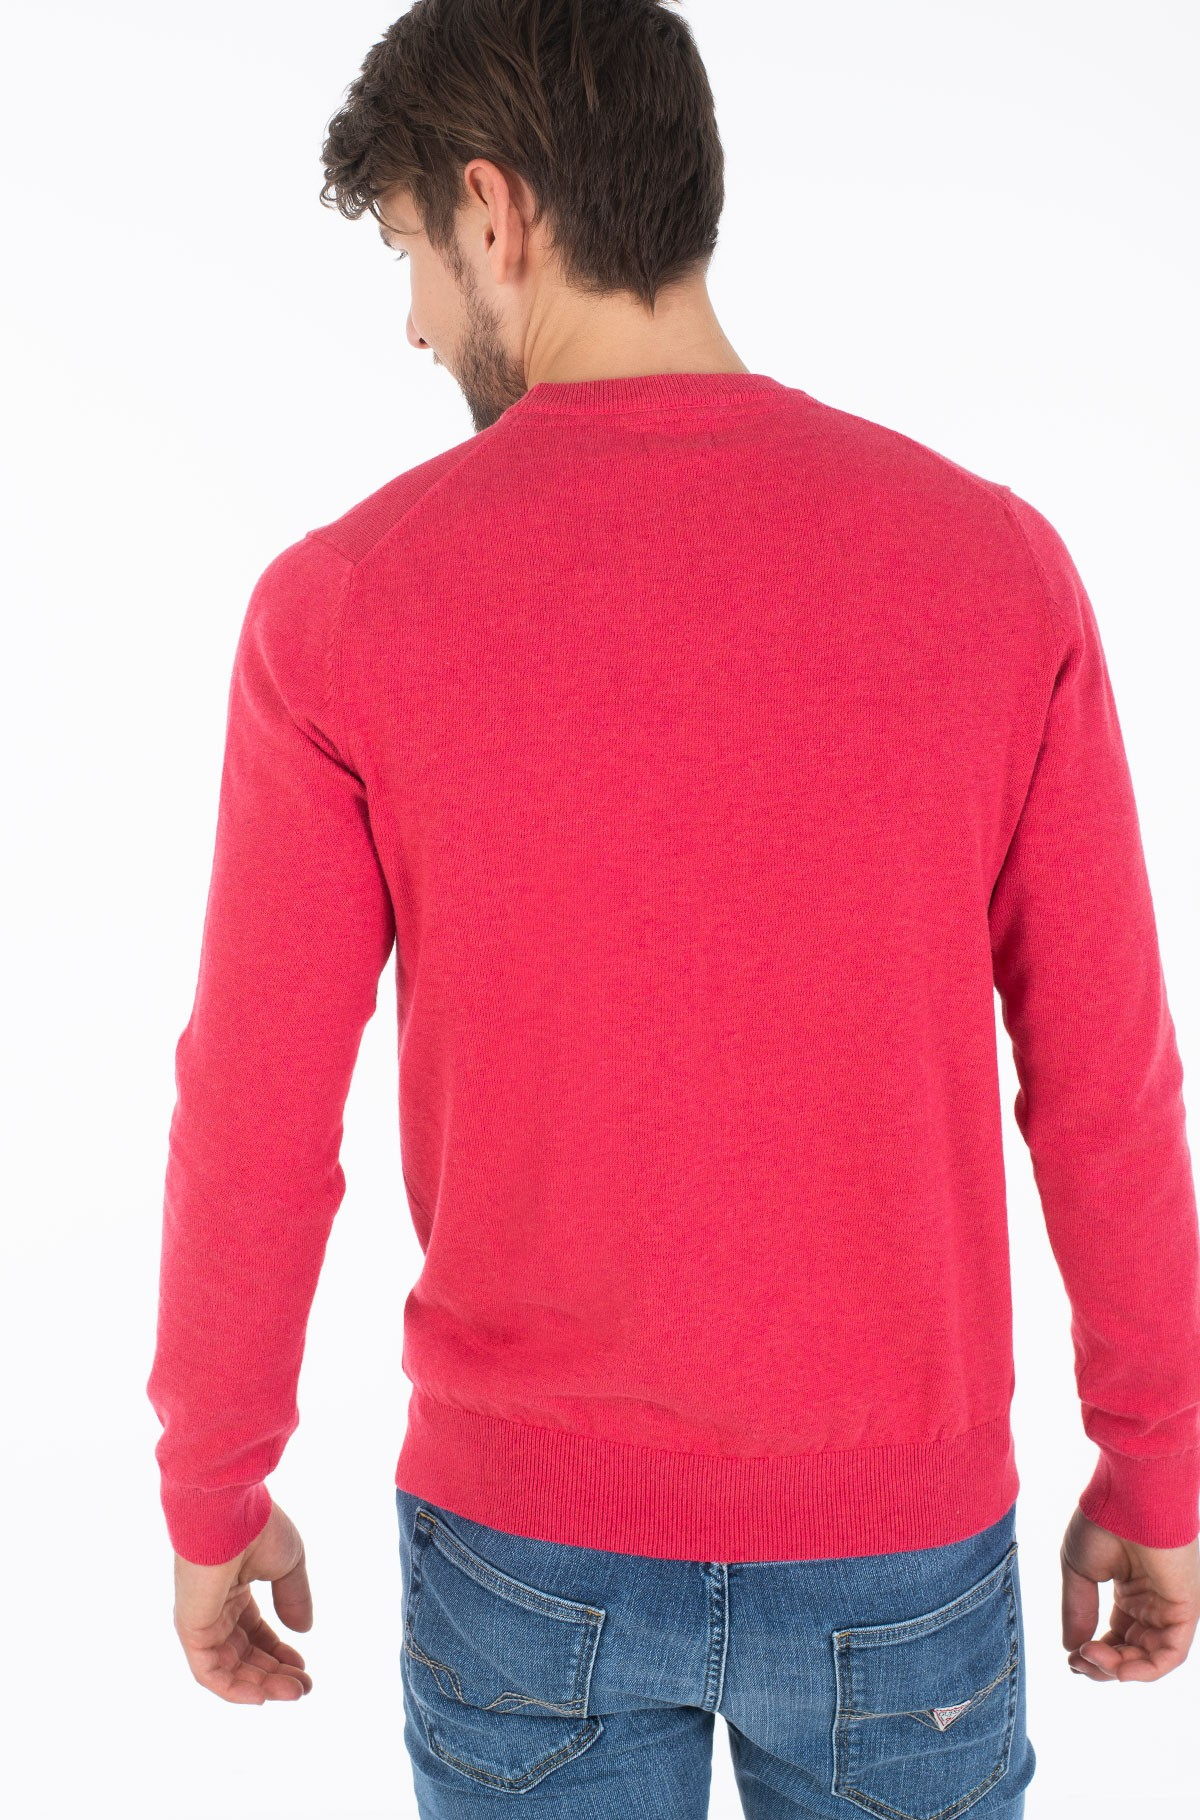 Sviiter 12GG CREW NECK SWEATER-full-3